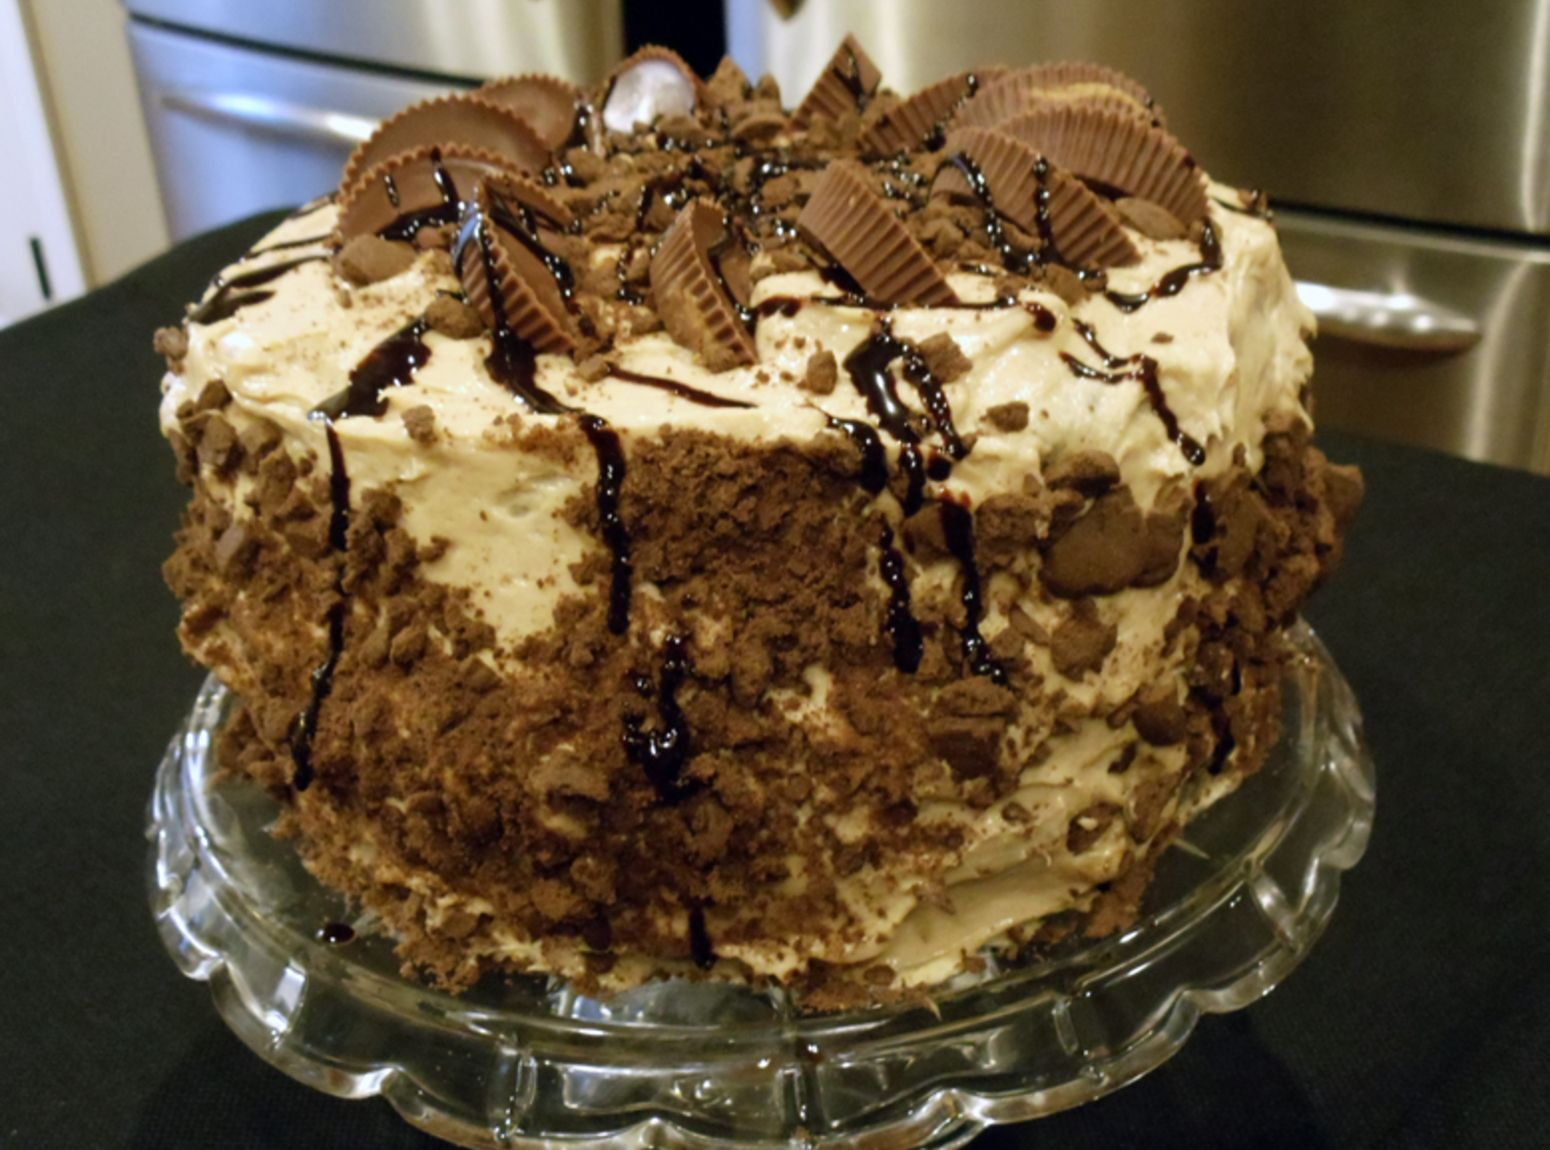 Missy's Peanut Butter Passion Cake- Ok this is very sinful, but it looks delicious!!! :)